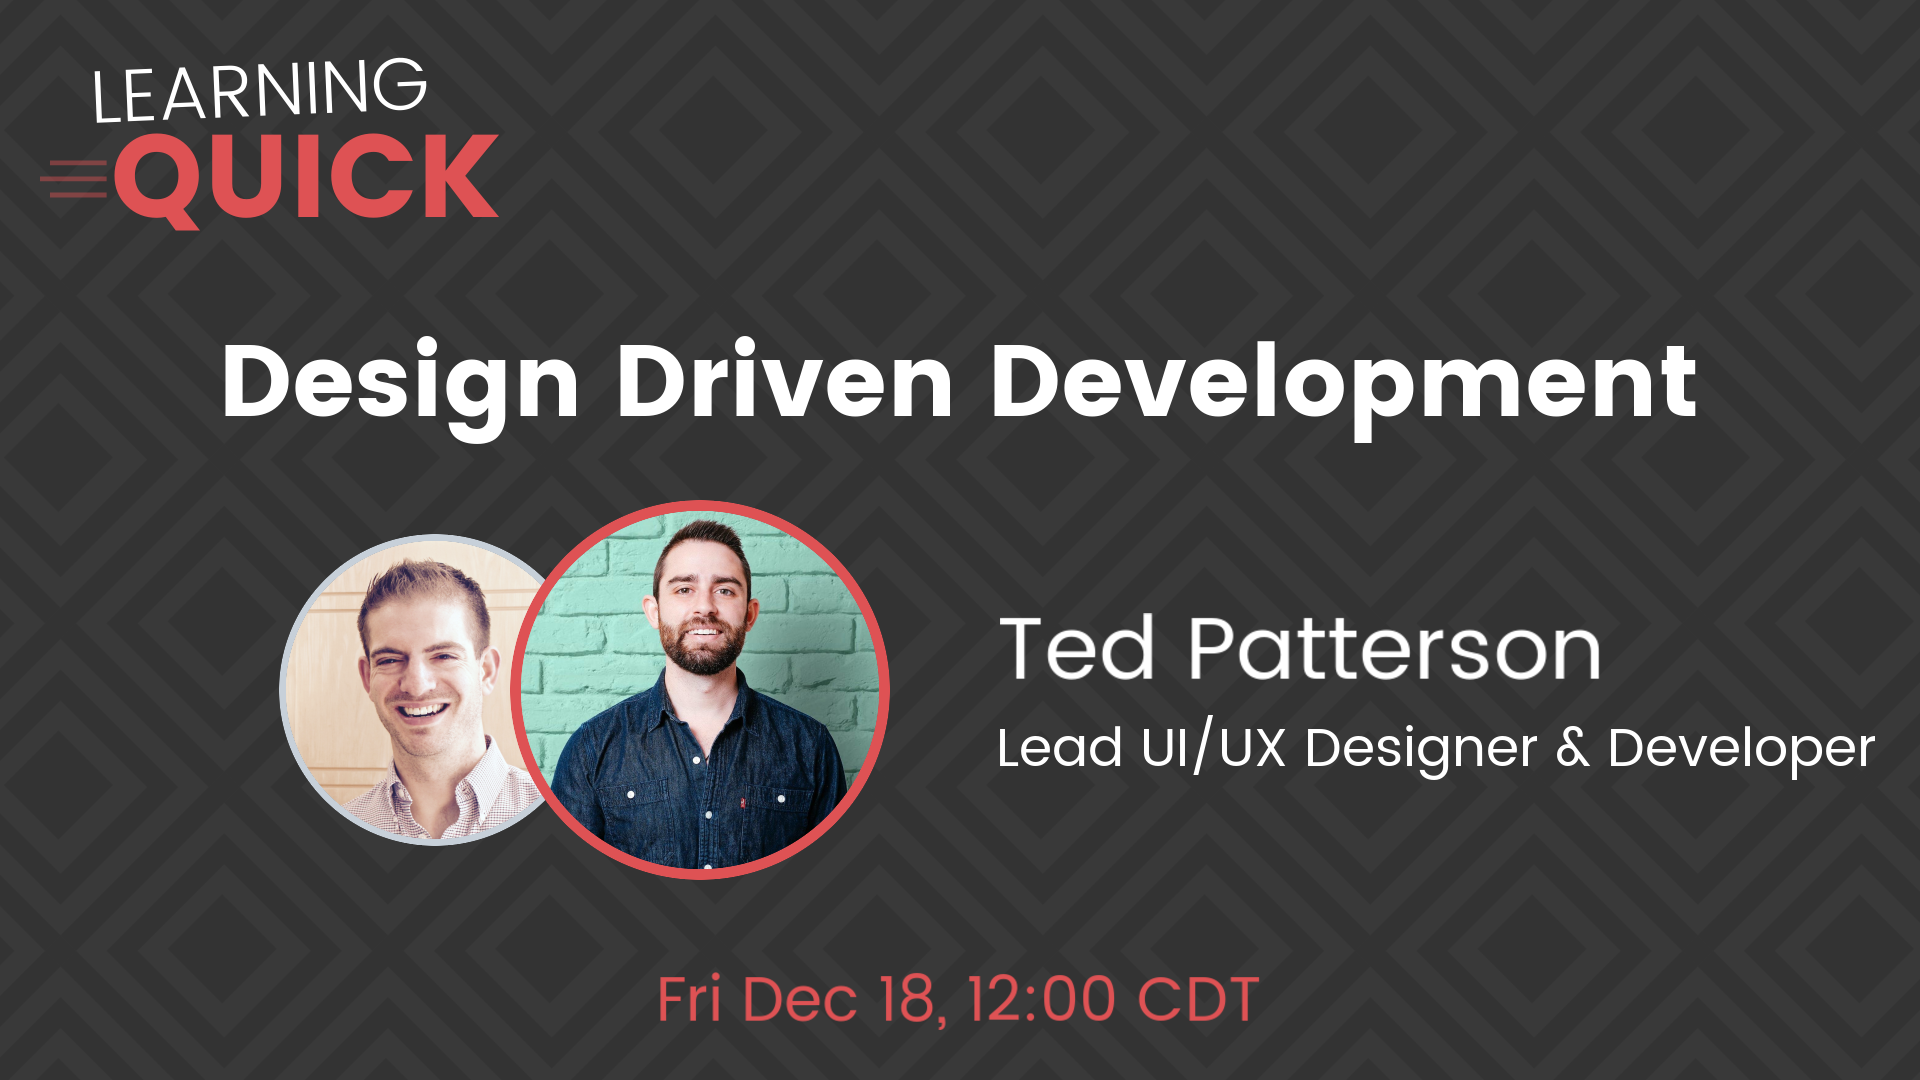 Design Driven Development with Ted Patterson